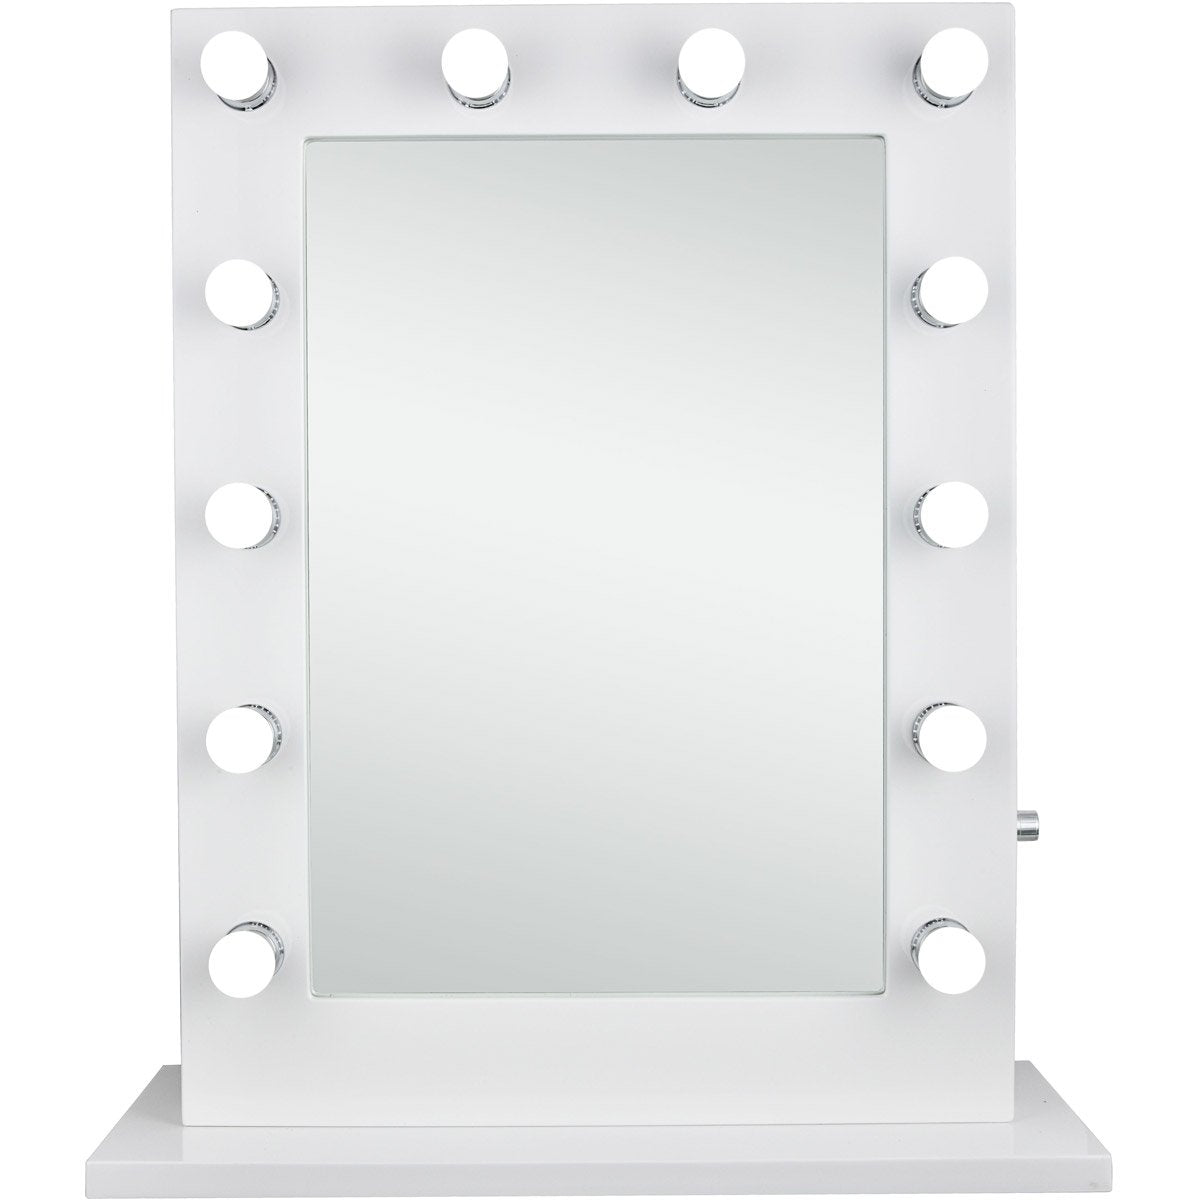 Hollywood 32.5 X 27.5 Led Mirror - Glossy White Finish (Mre8505K) Led Mirror